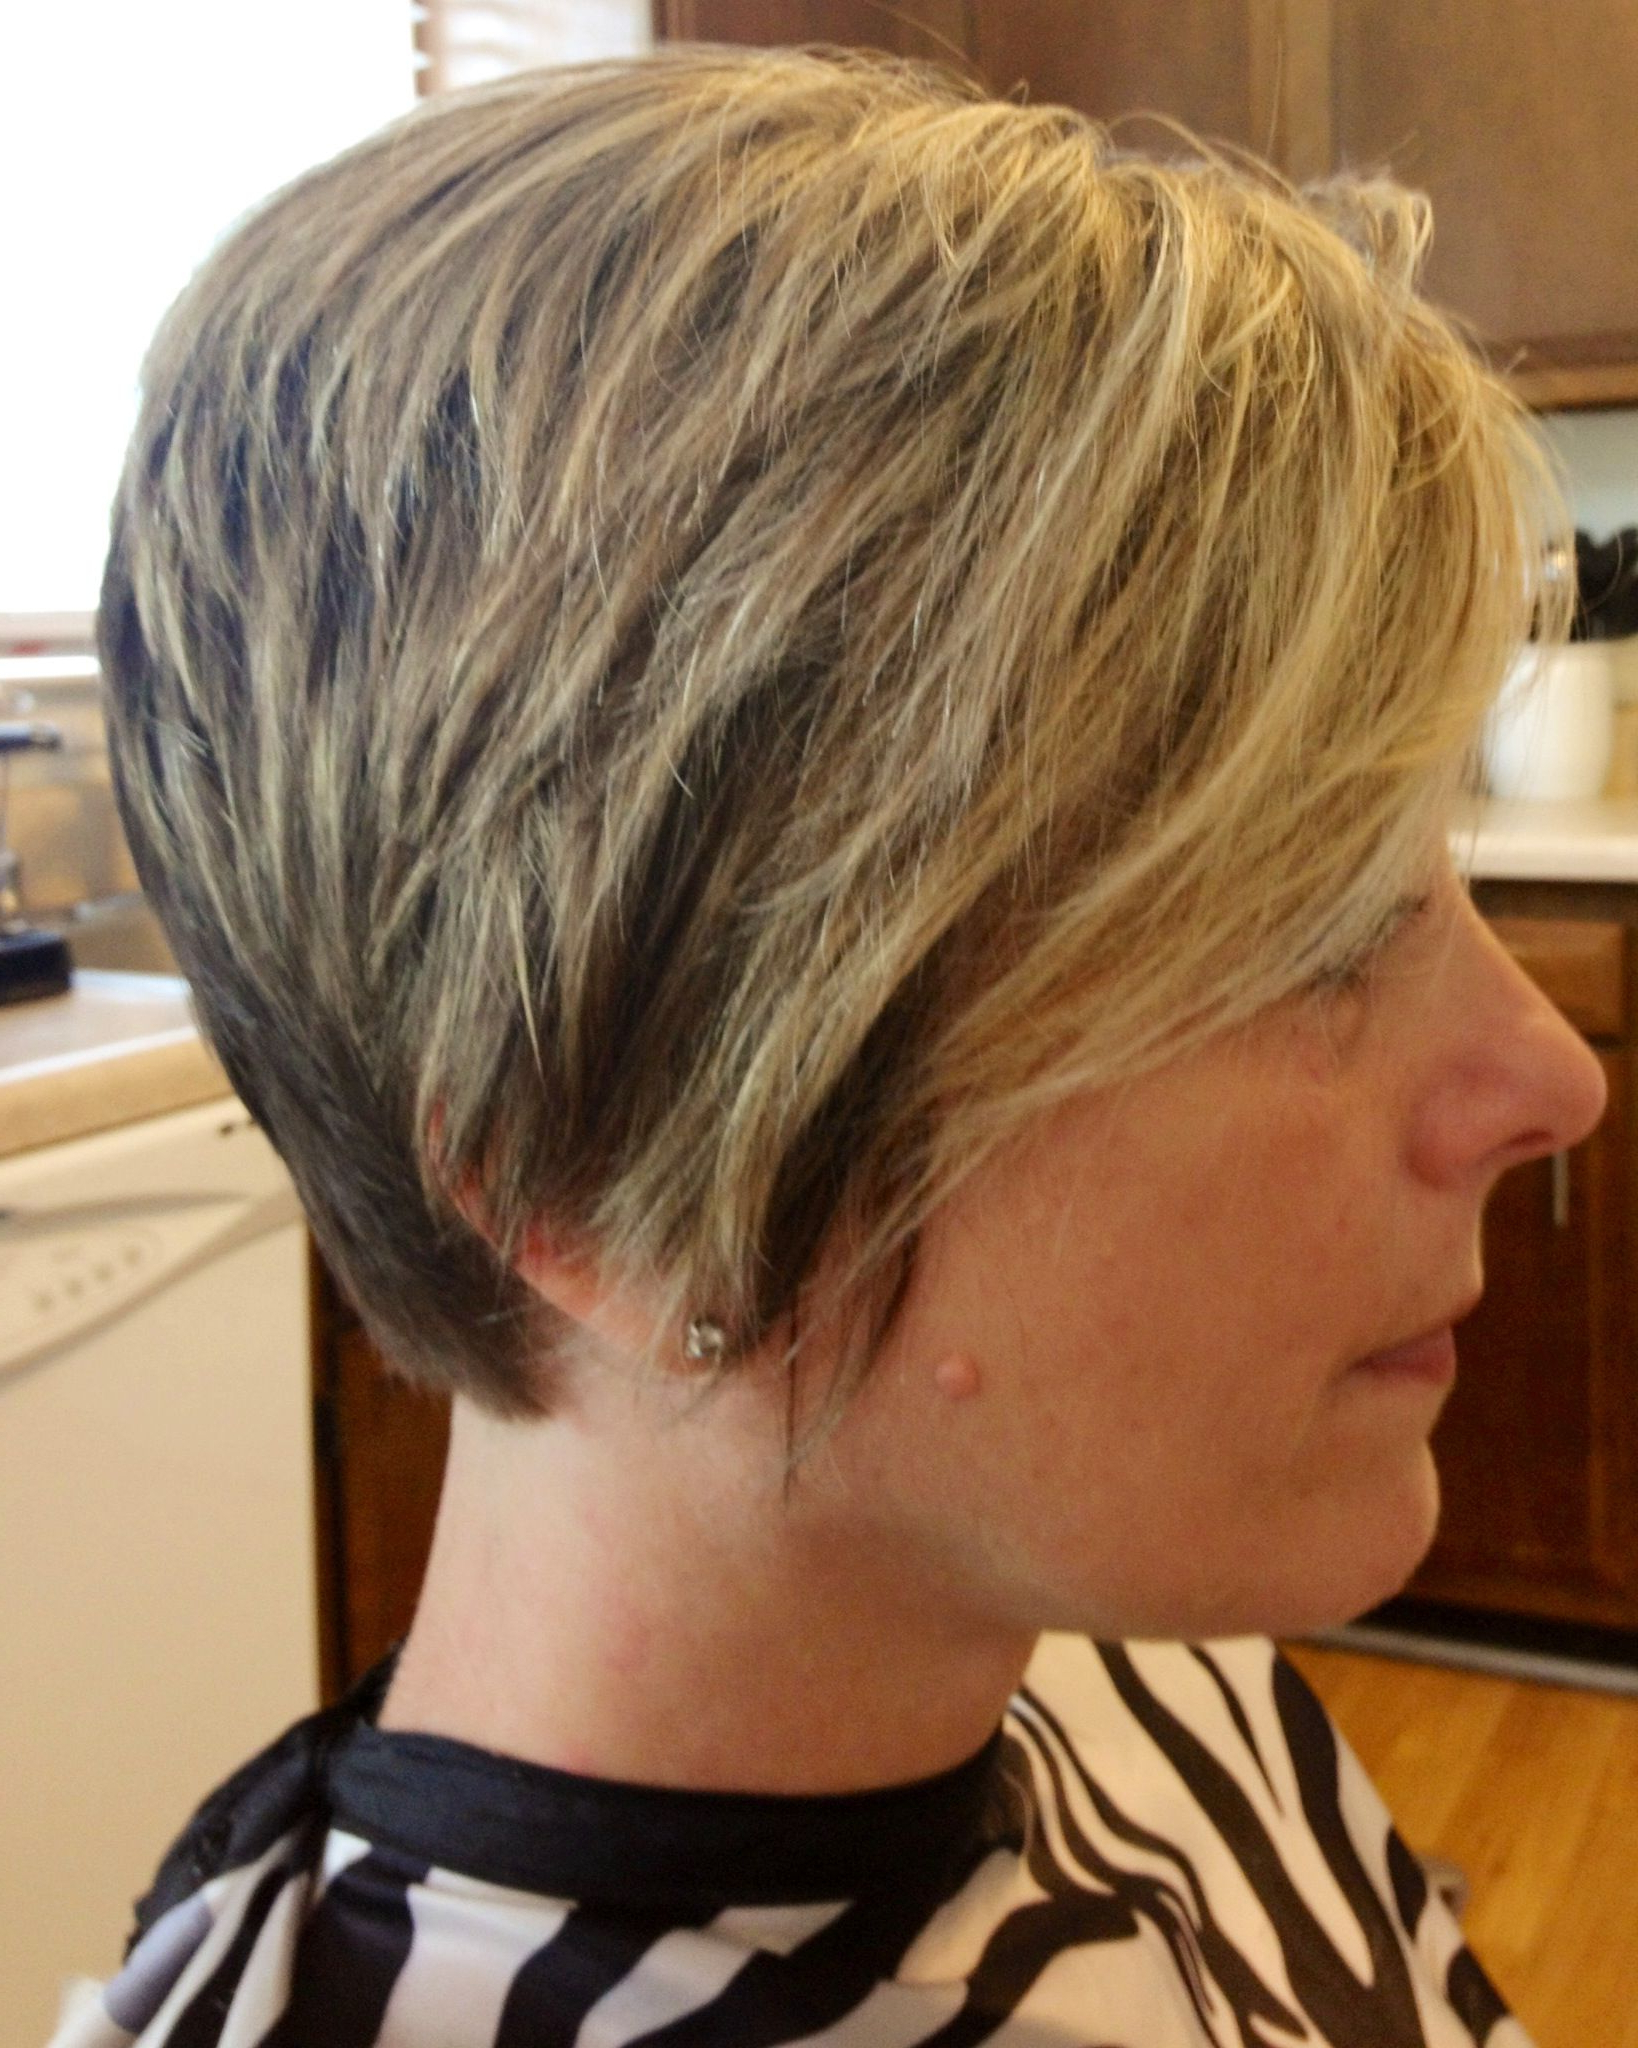 Short Hairstyle With Ears Covered (View 4 of 20)